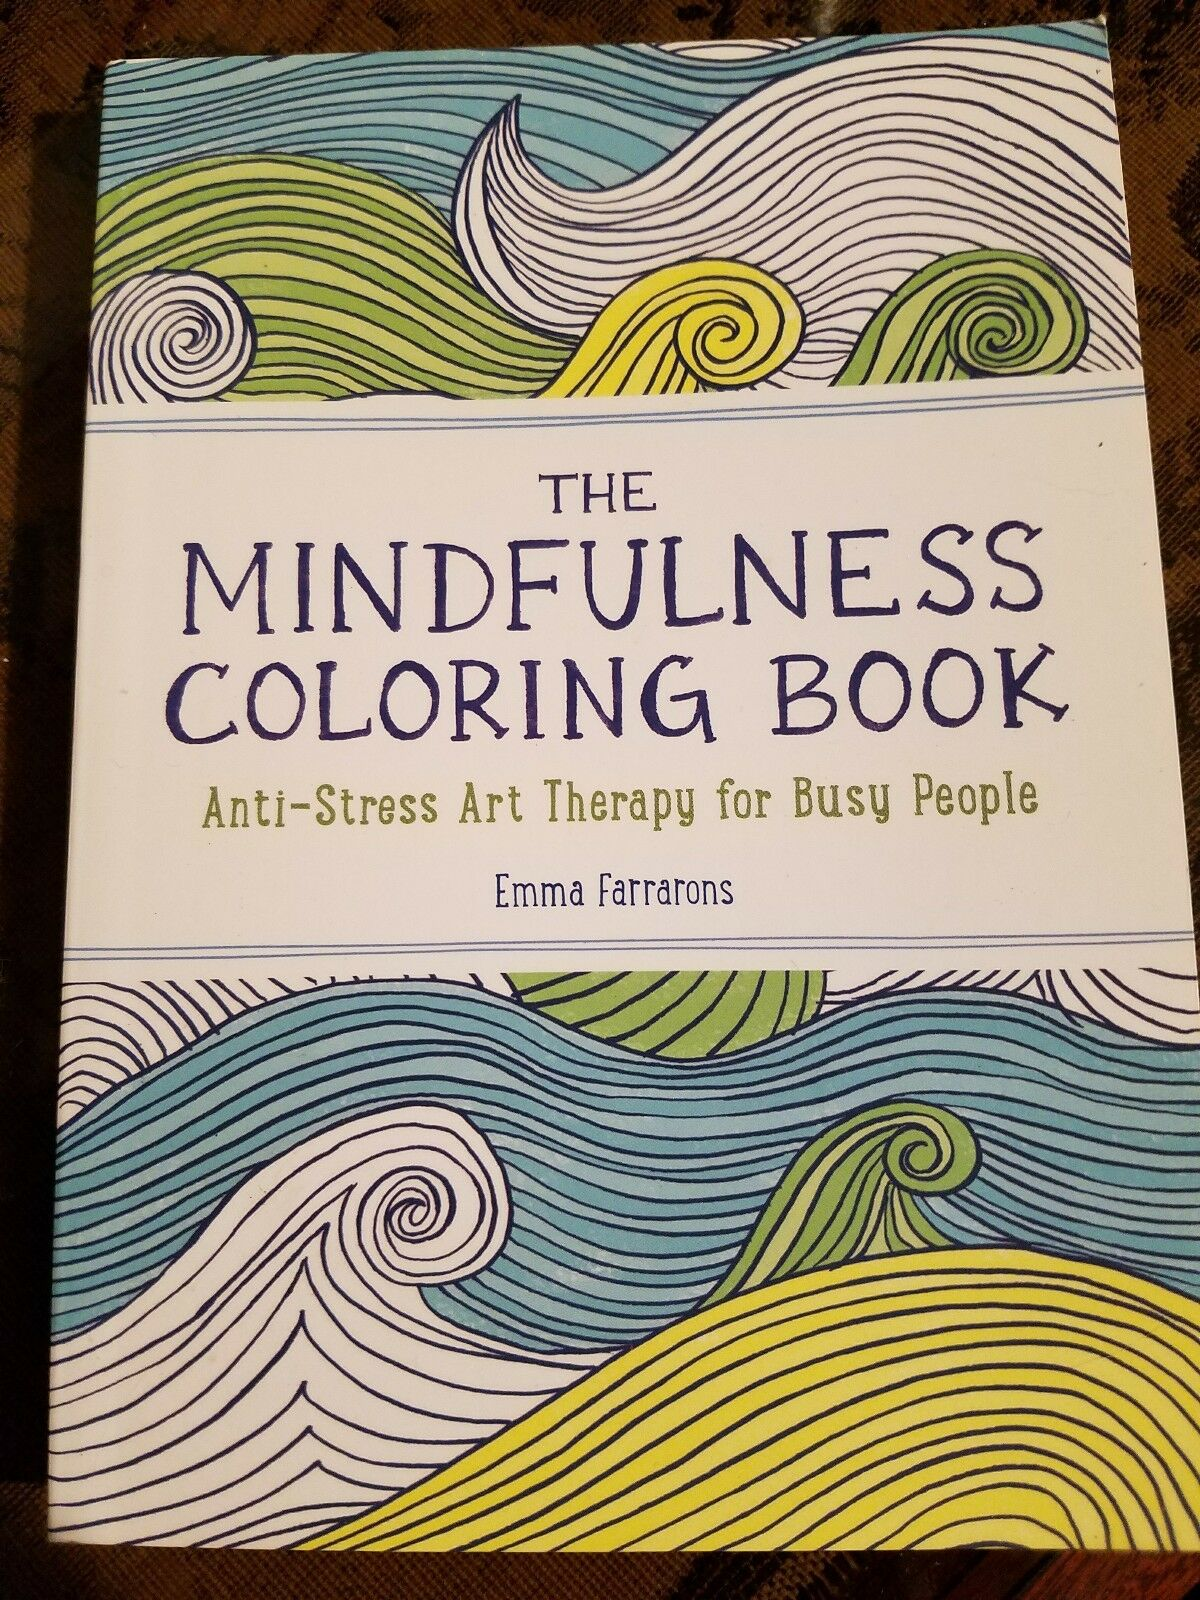 The Mindfulness Coloring More Anti Stress Art Therapy For Busy People Vol 2 By Emma Farrarons 2015 Paperback